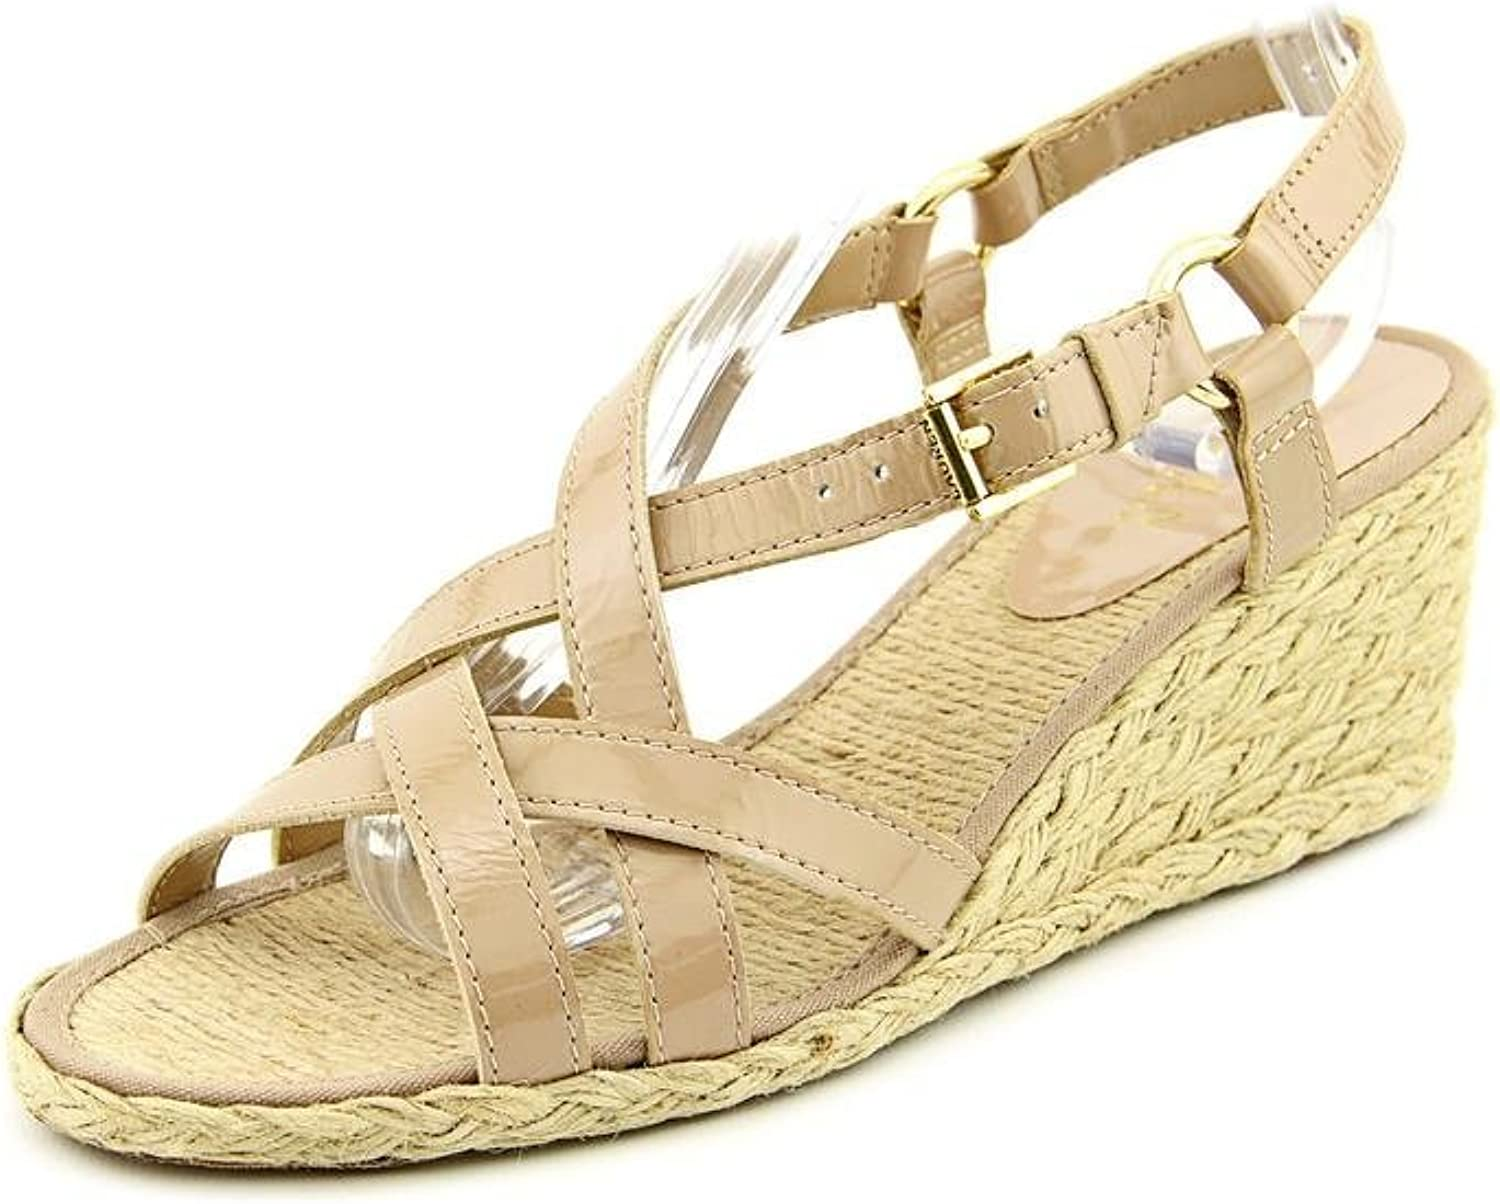 Lauren Ralph Lauren Chrissy Womens 8.5 Tan Wedge Sandals shoes New Display